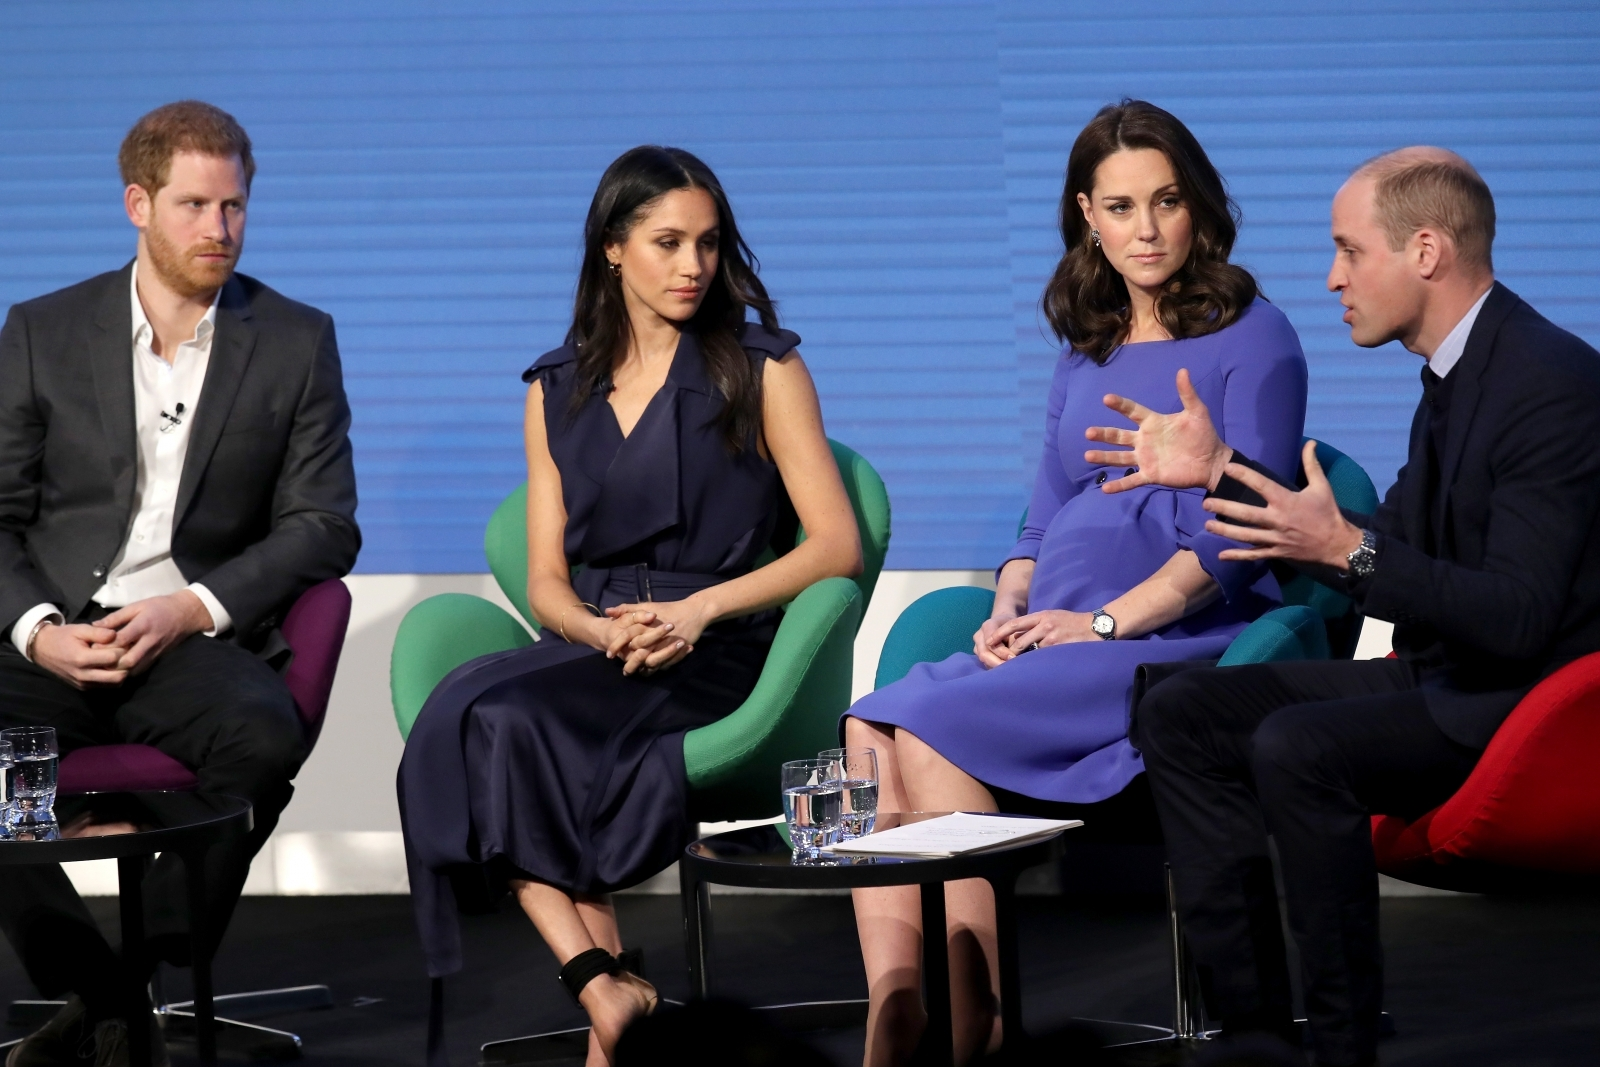 What do William and Kate think about Harry and Meghan's Oprah interview?